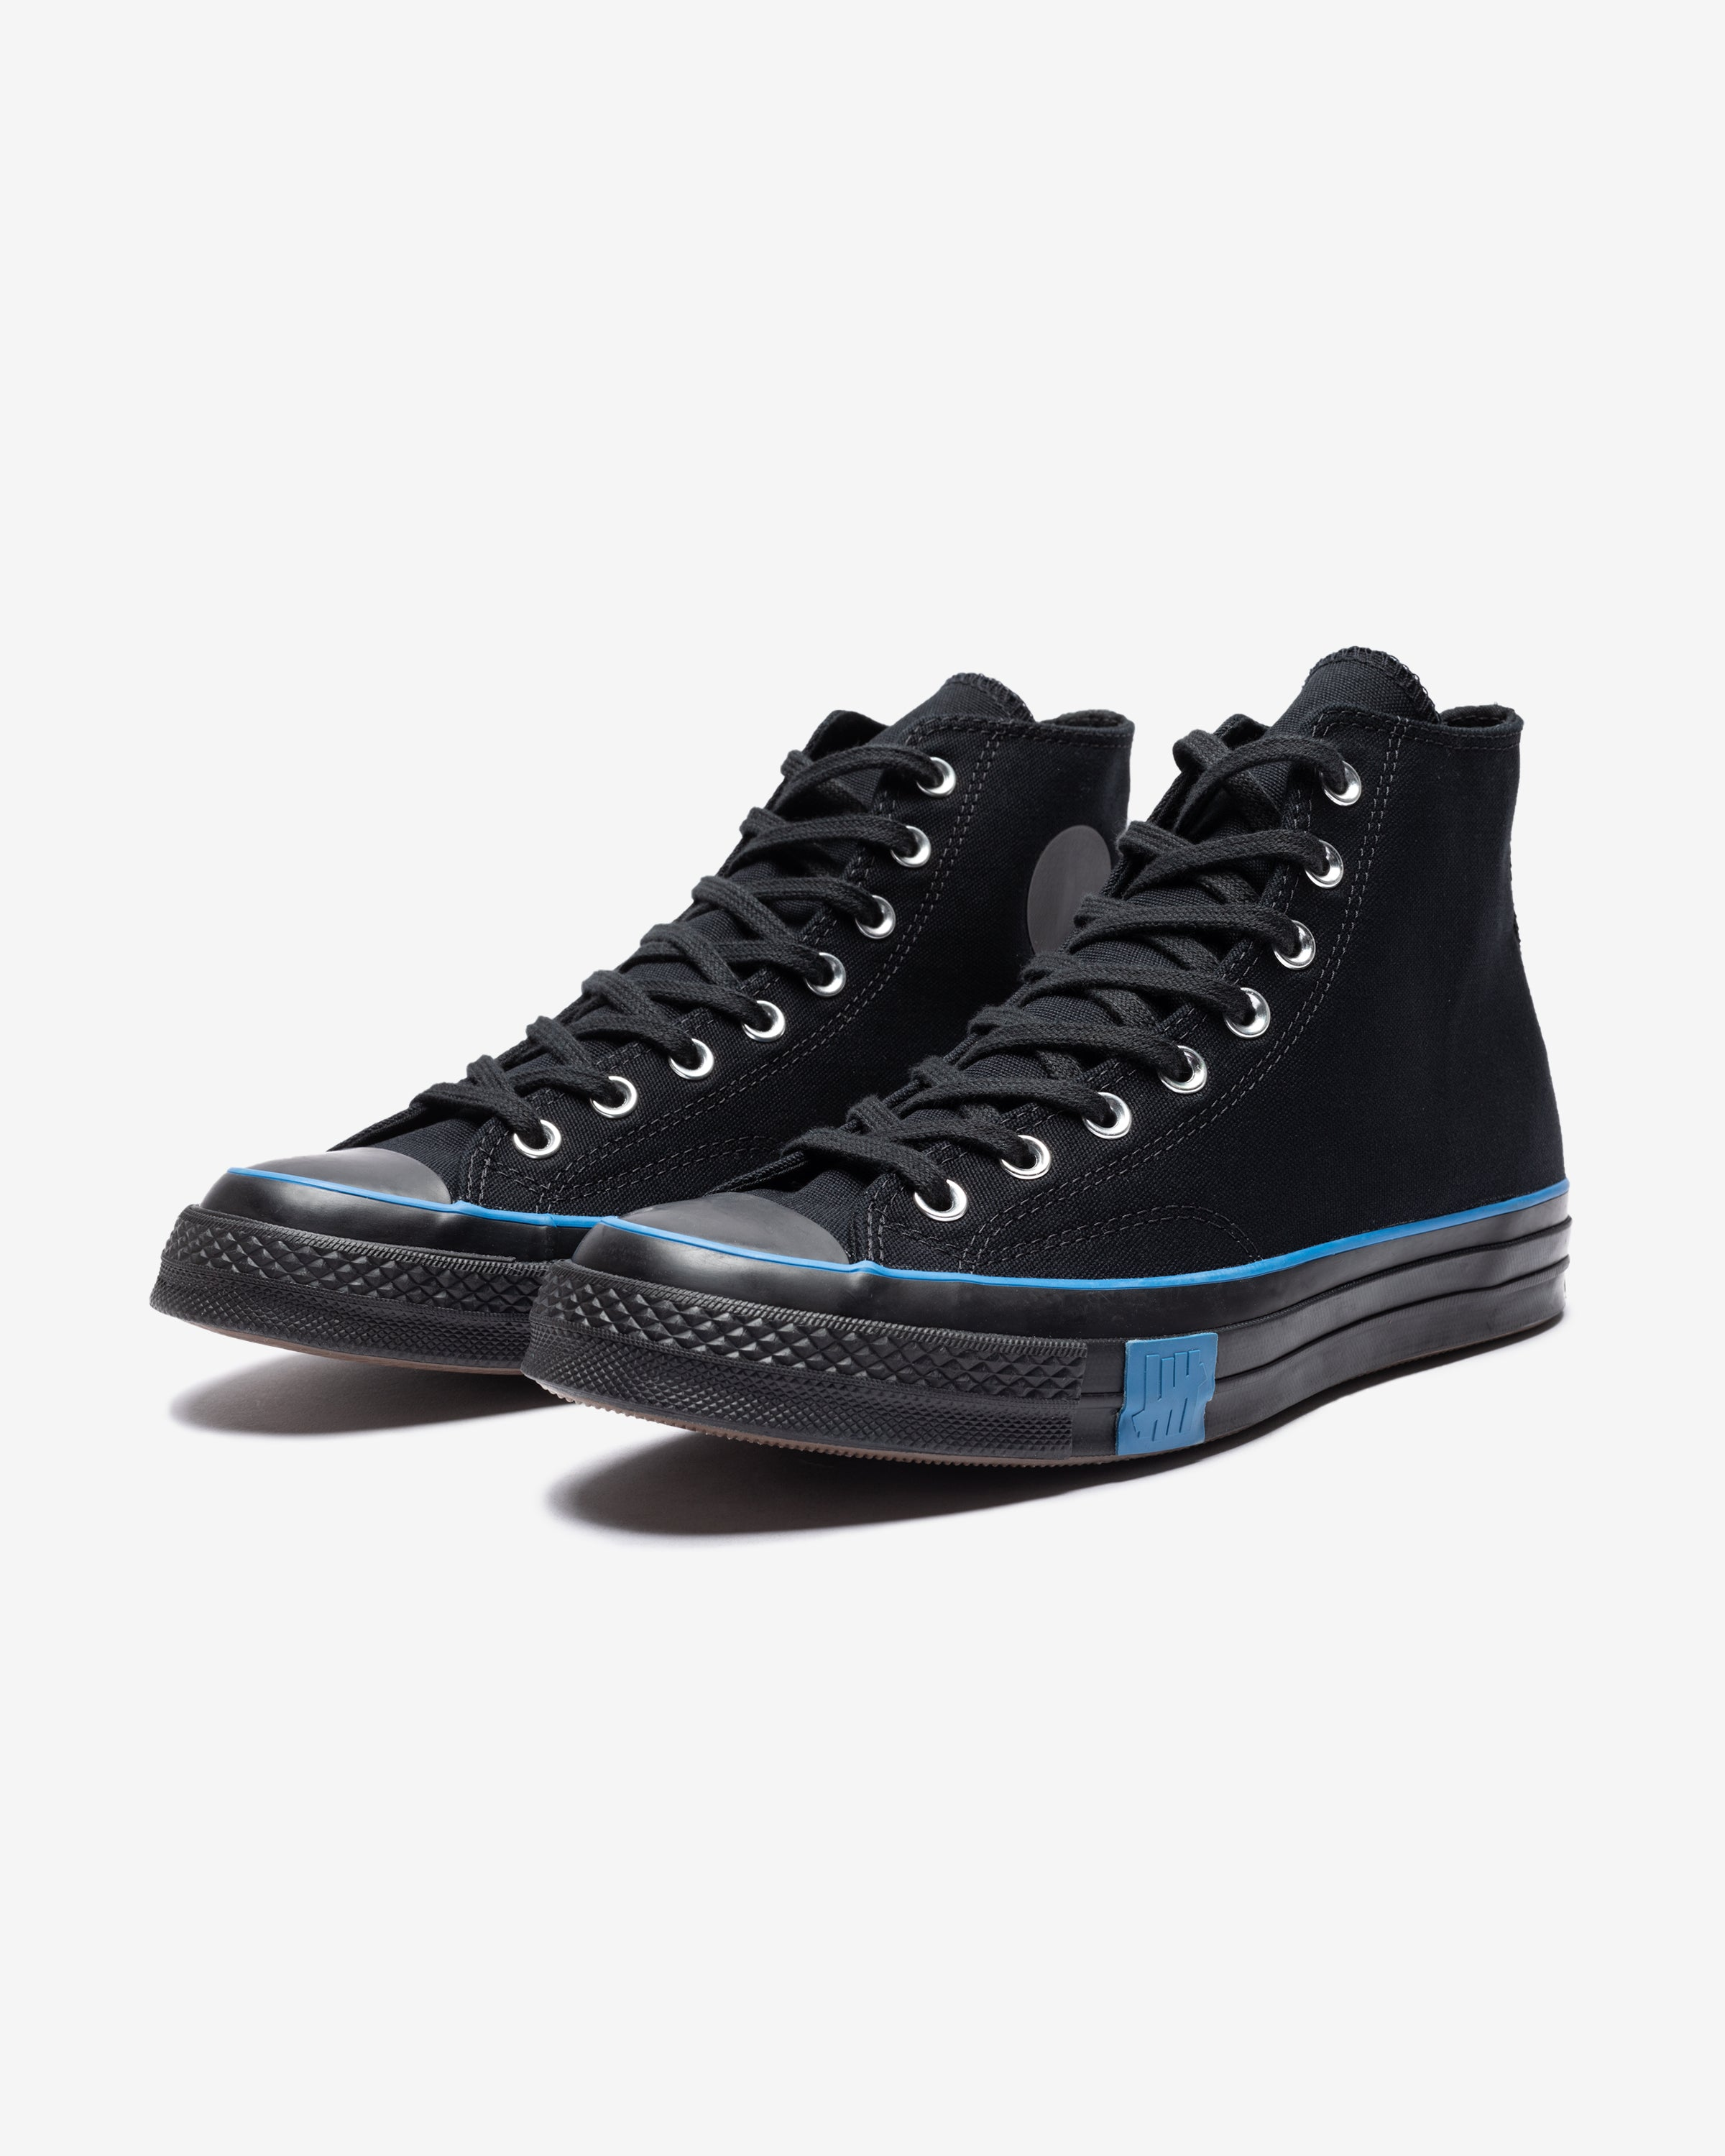 CONVERSE X UNDEFEATED CHUCK 70 HI - BLACK/ IMPERIALBLUE